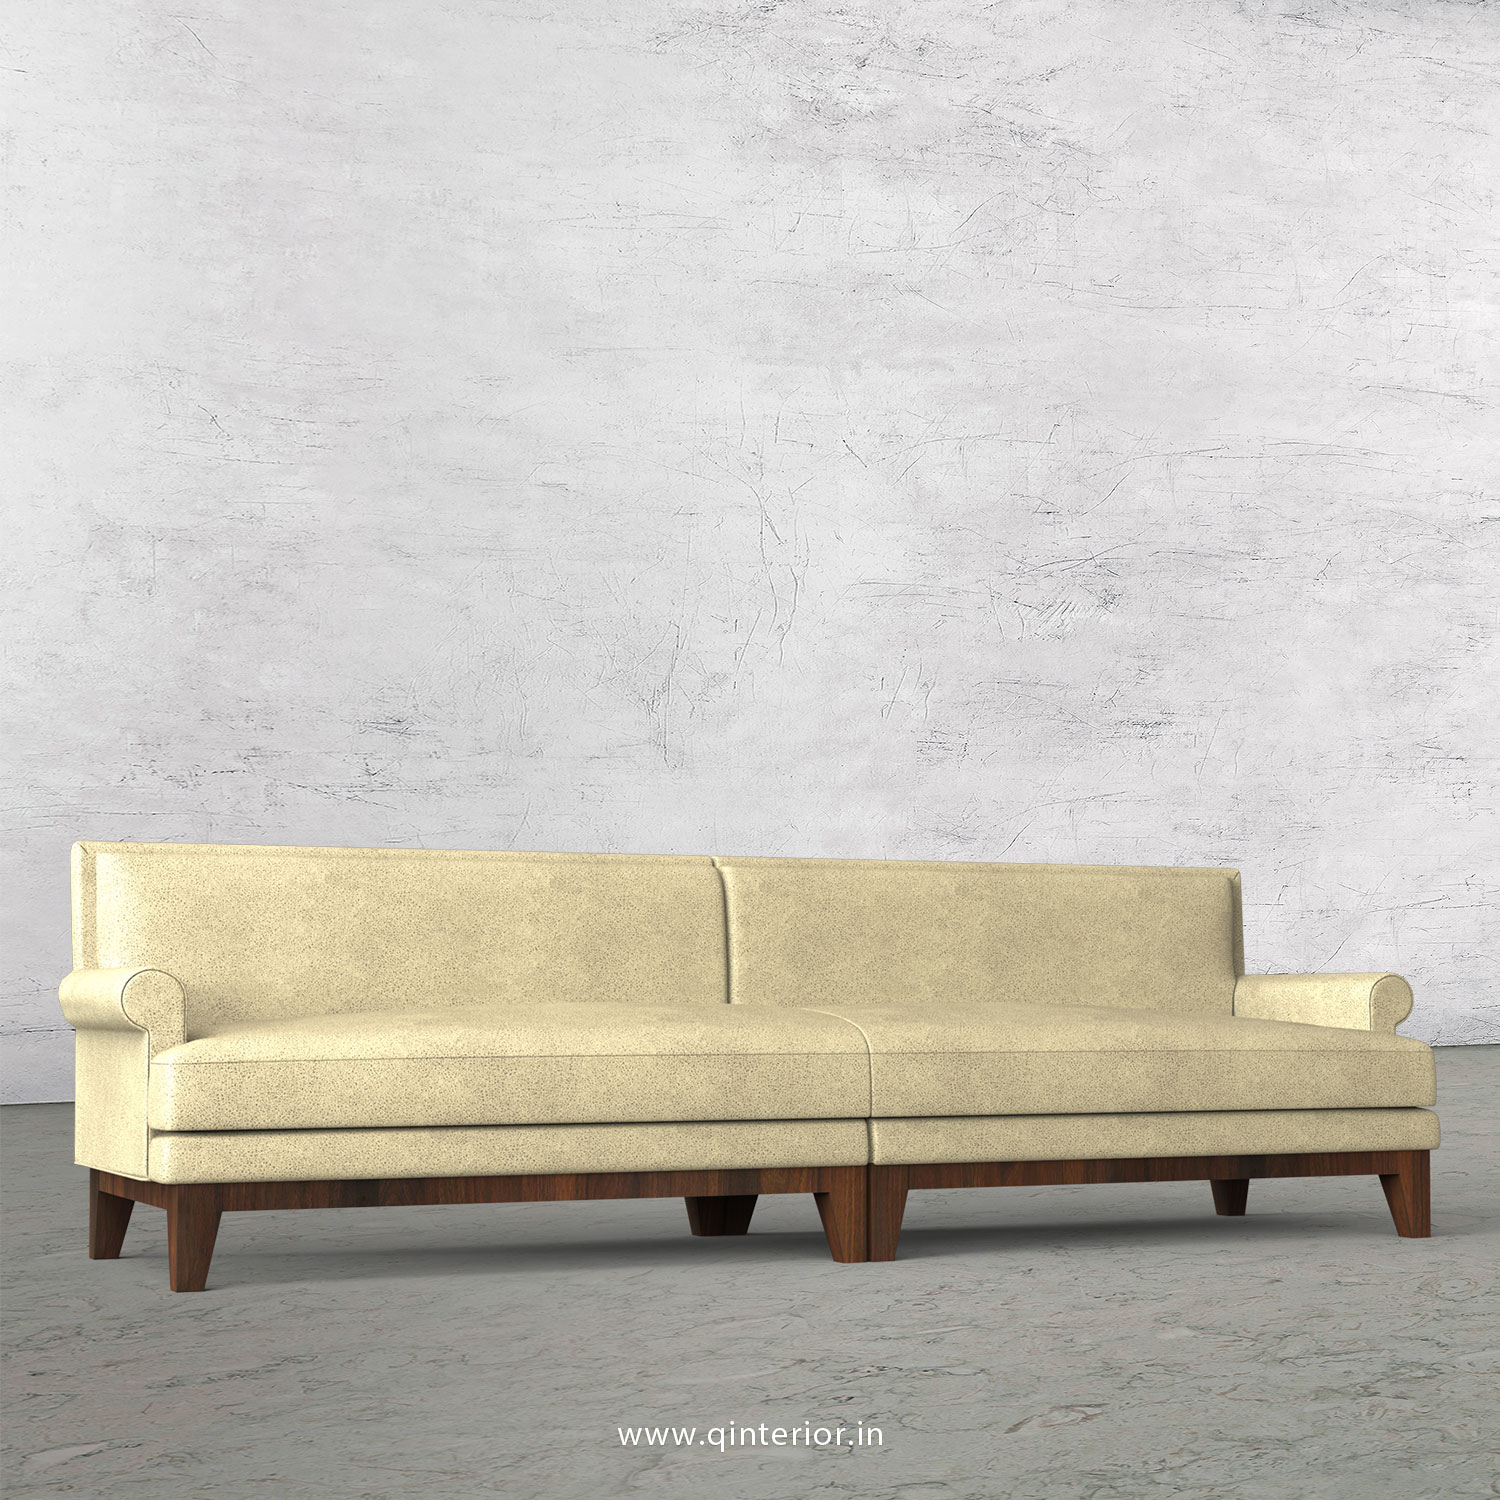 Aviana 4 Seater Sofa in Fab Leather Fabric - SFA001 FL10